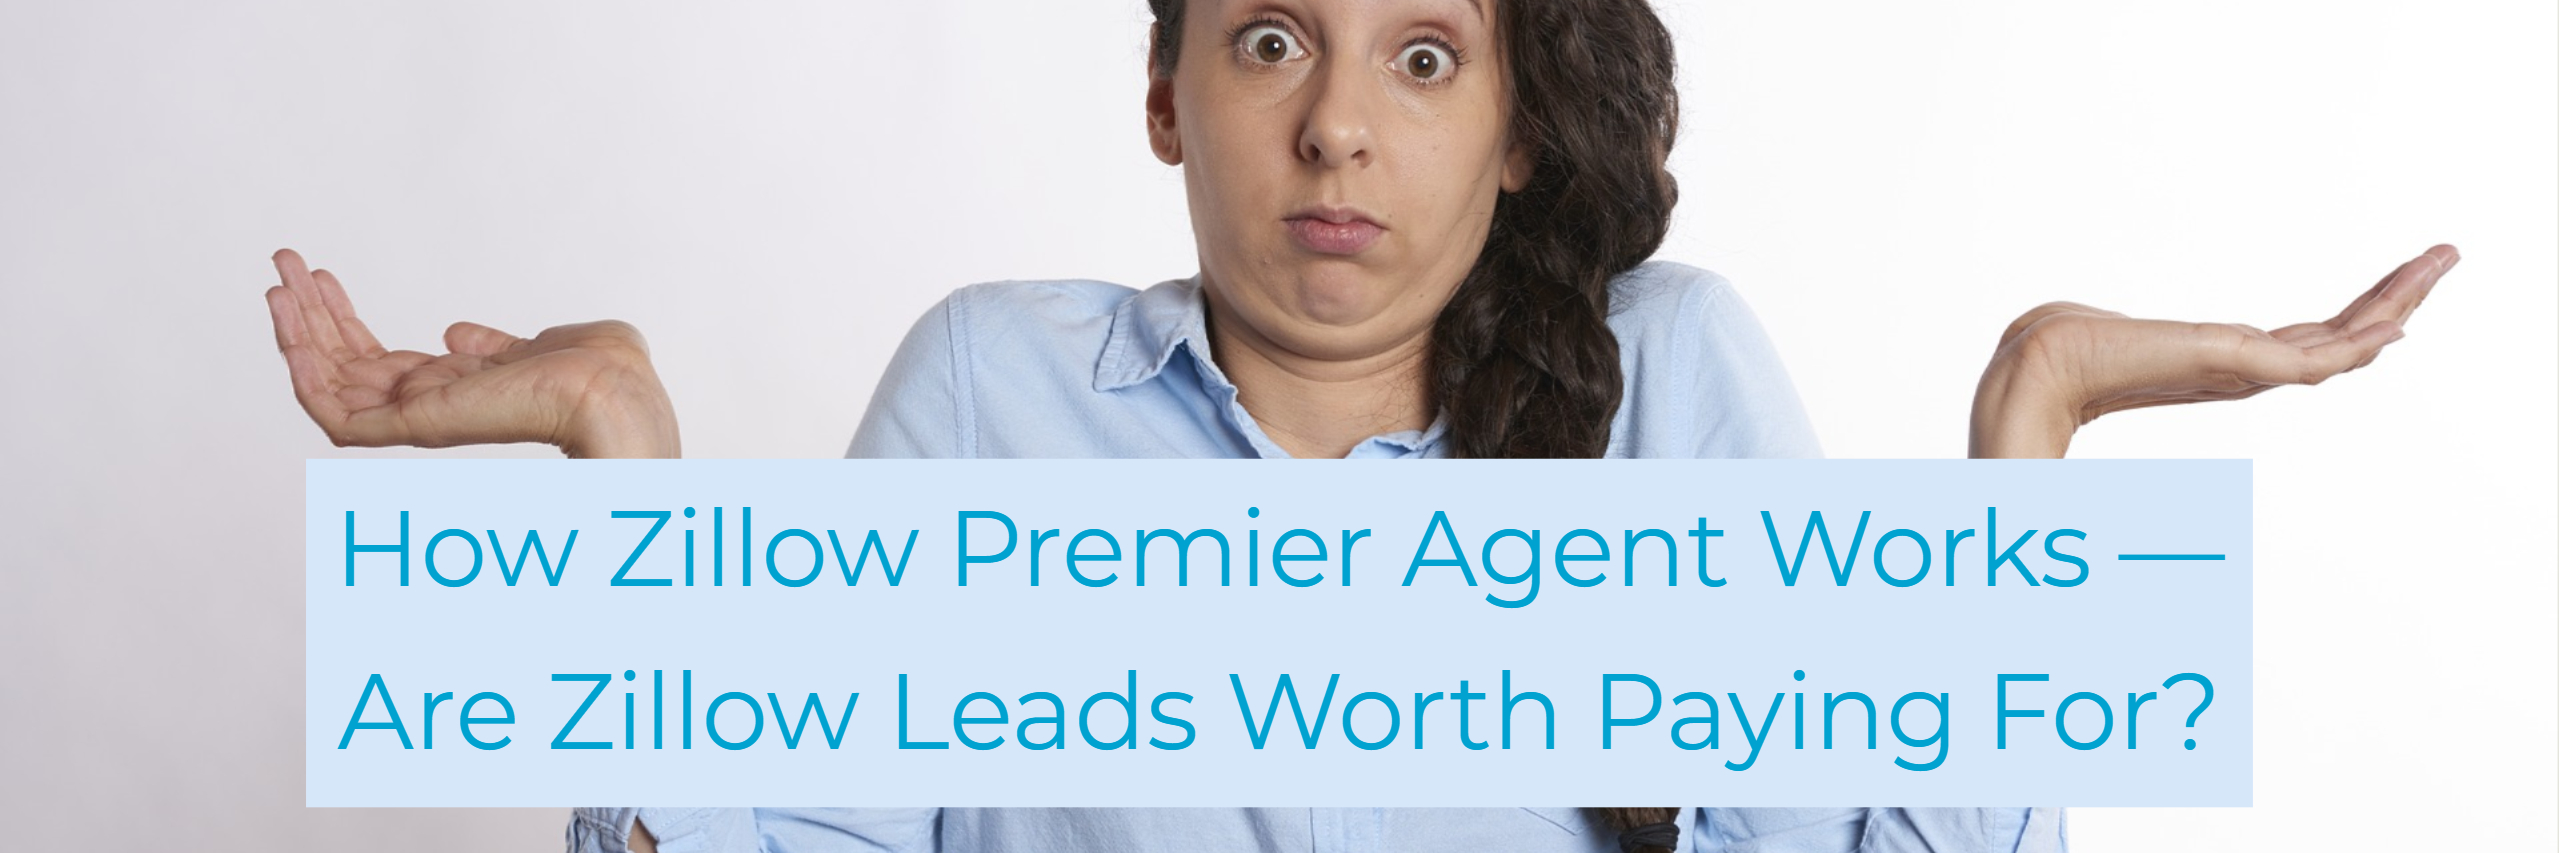 How Zillow Premier Agent Works ― Are Zillow Leads Worth Paying For_ (1)